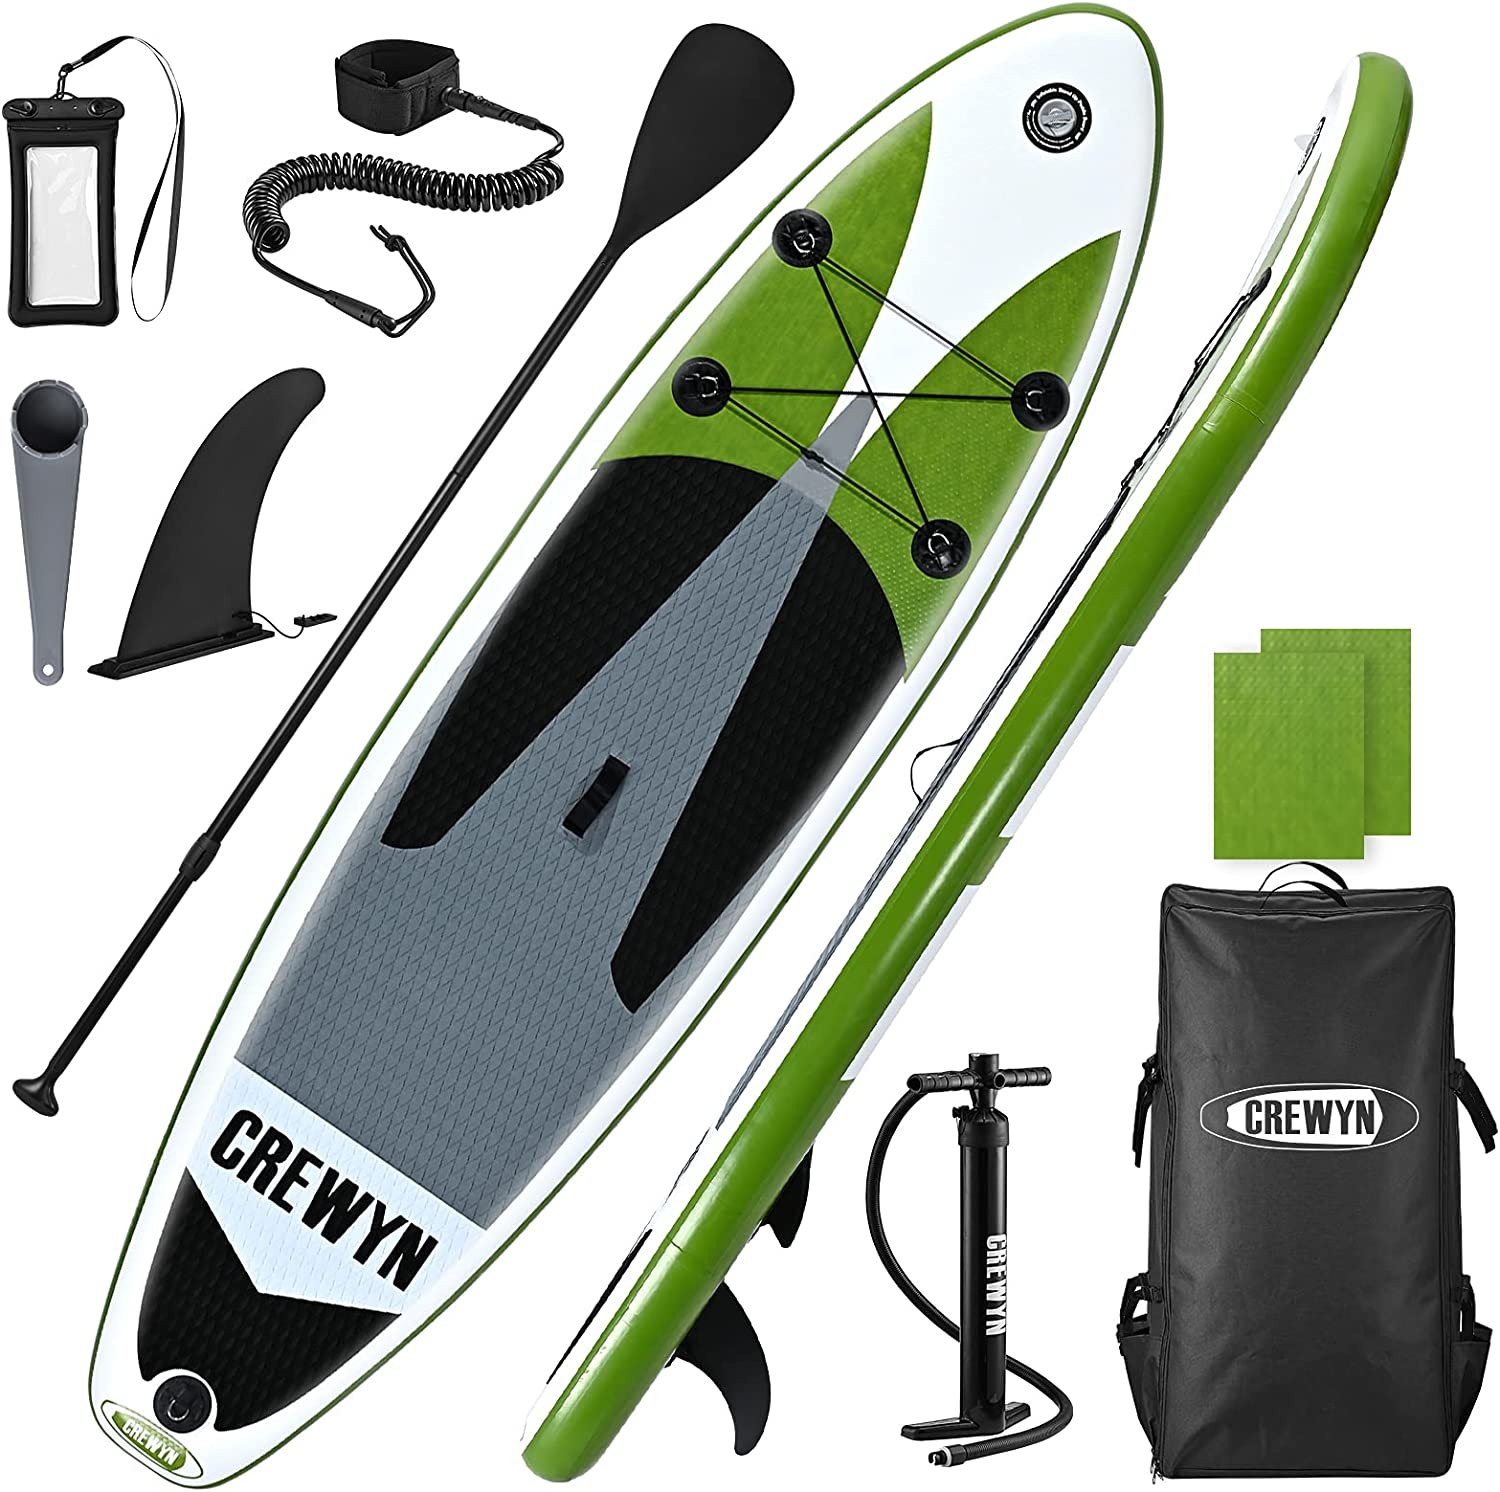 CREWYN 10ft Inflatable Stand Up Paddle Board $189.99 Coupon